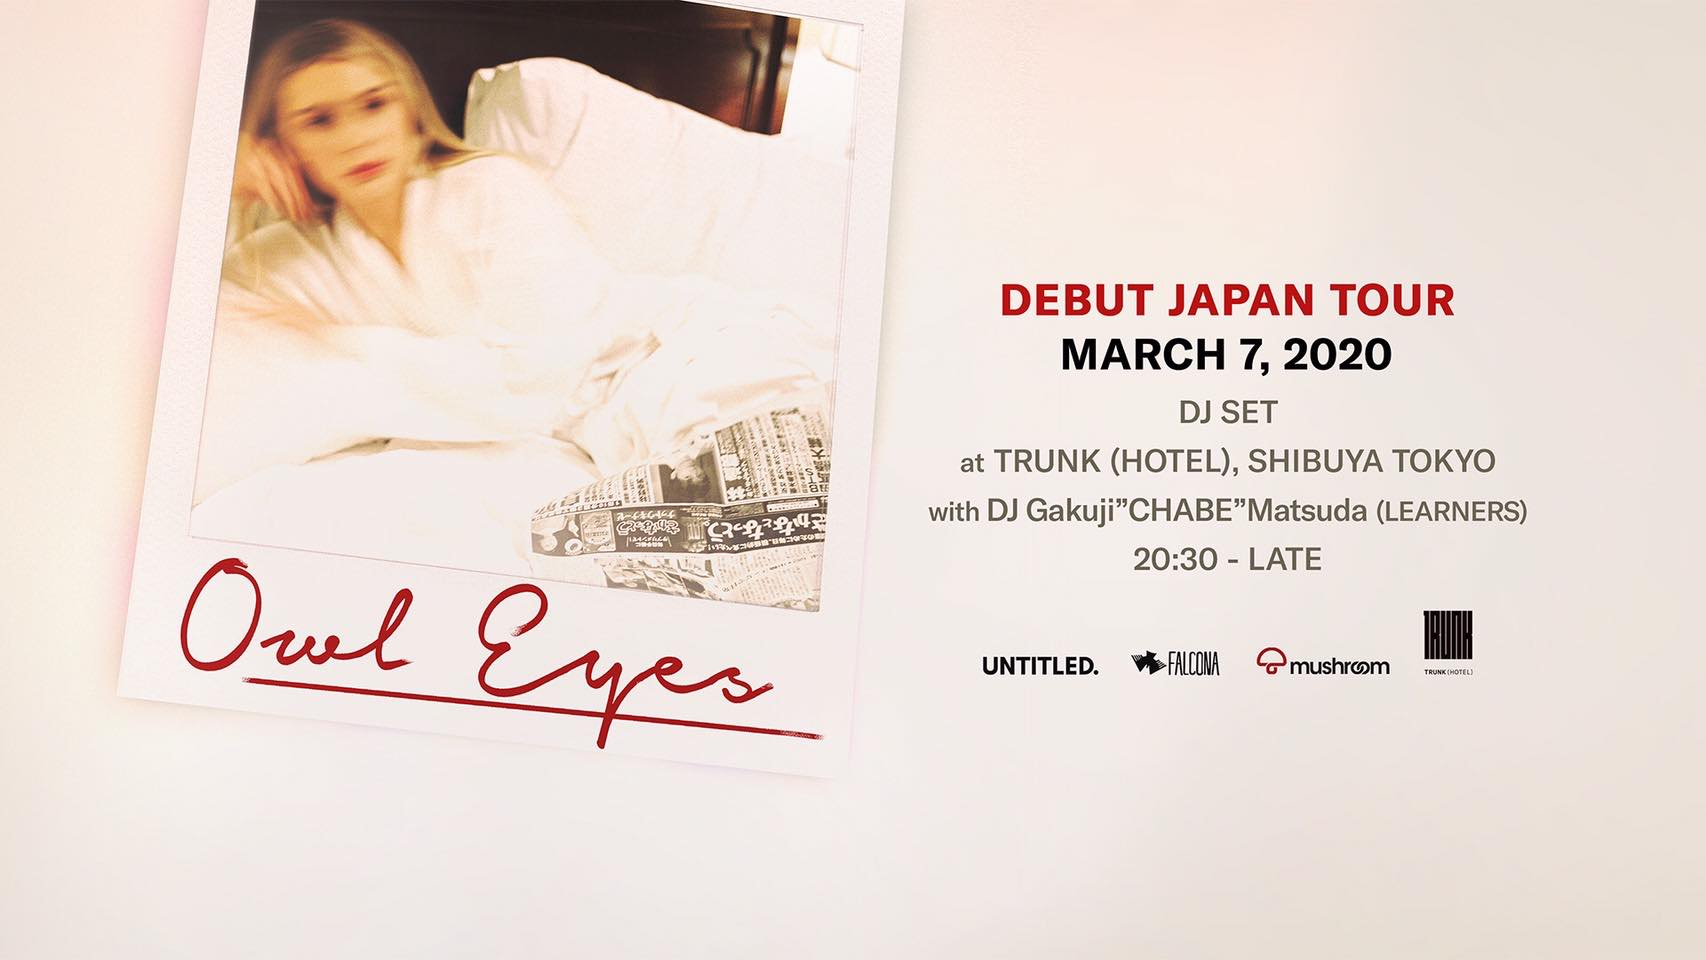 Owl Eyes Debut Japan Tour